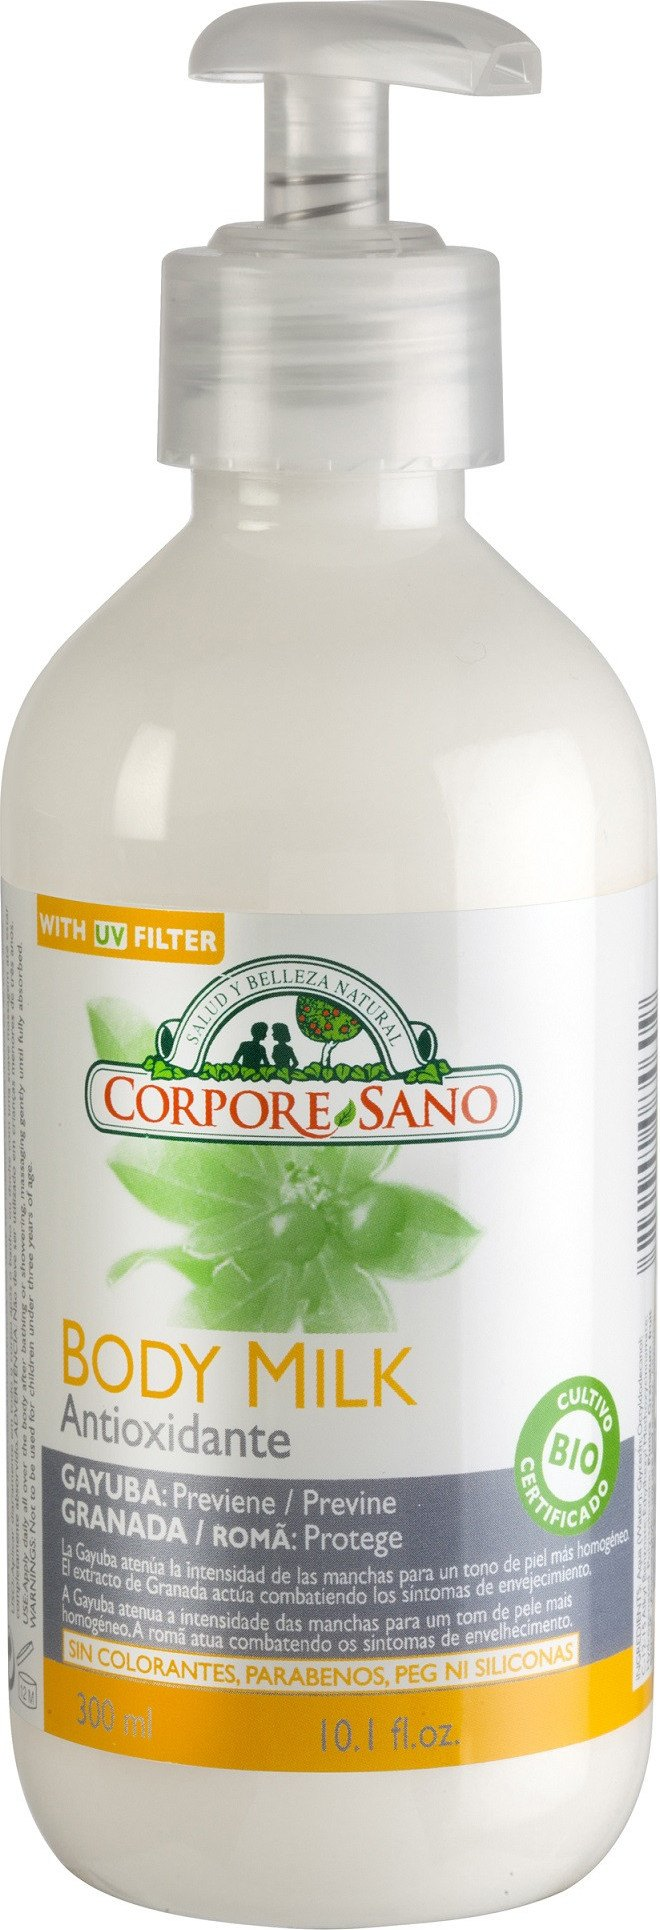 Corpore Sano Body Milk Antioxidantes 300 Ml Bio